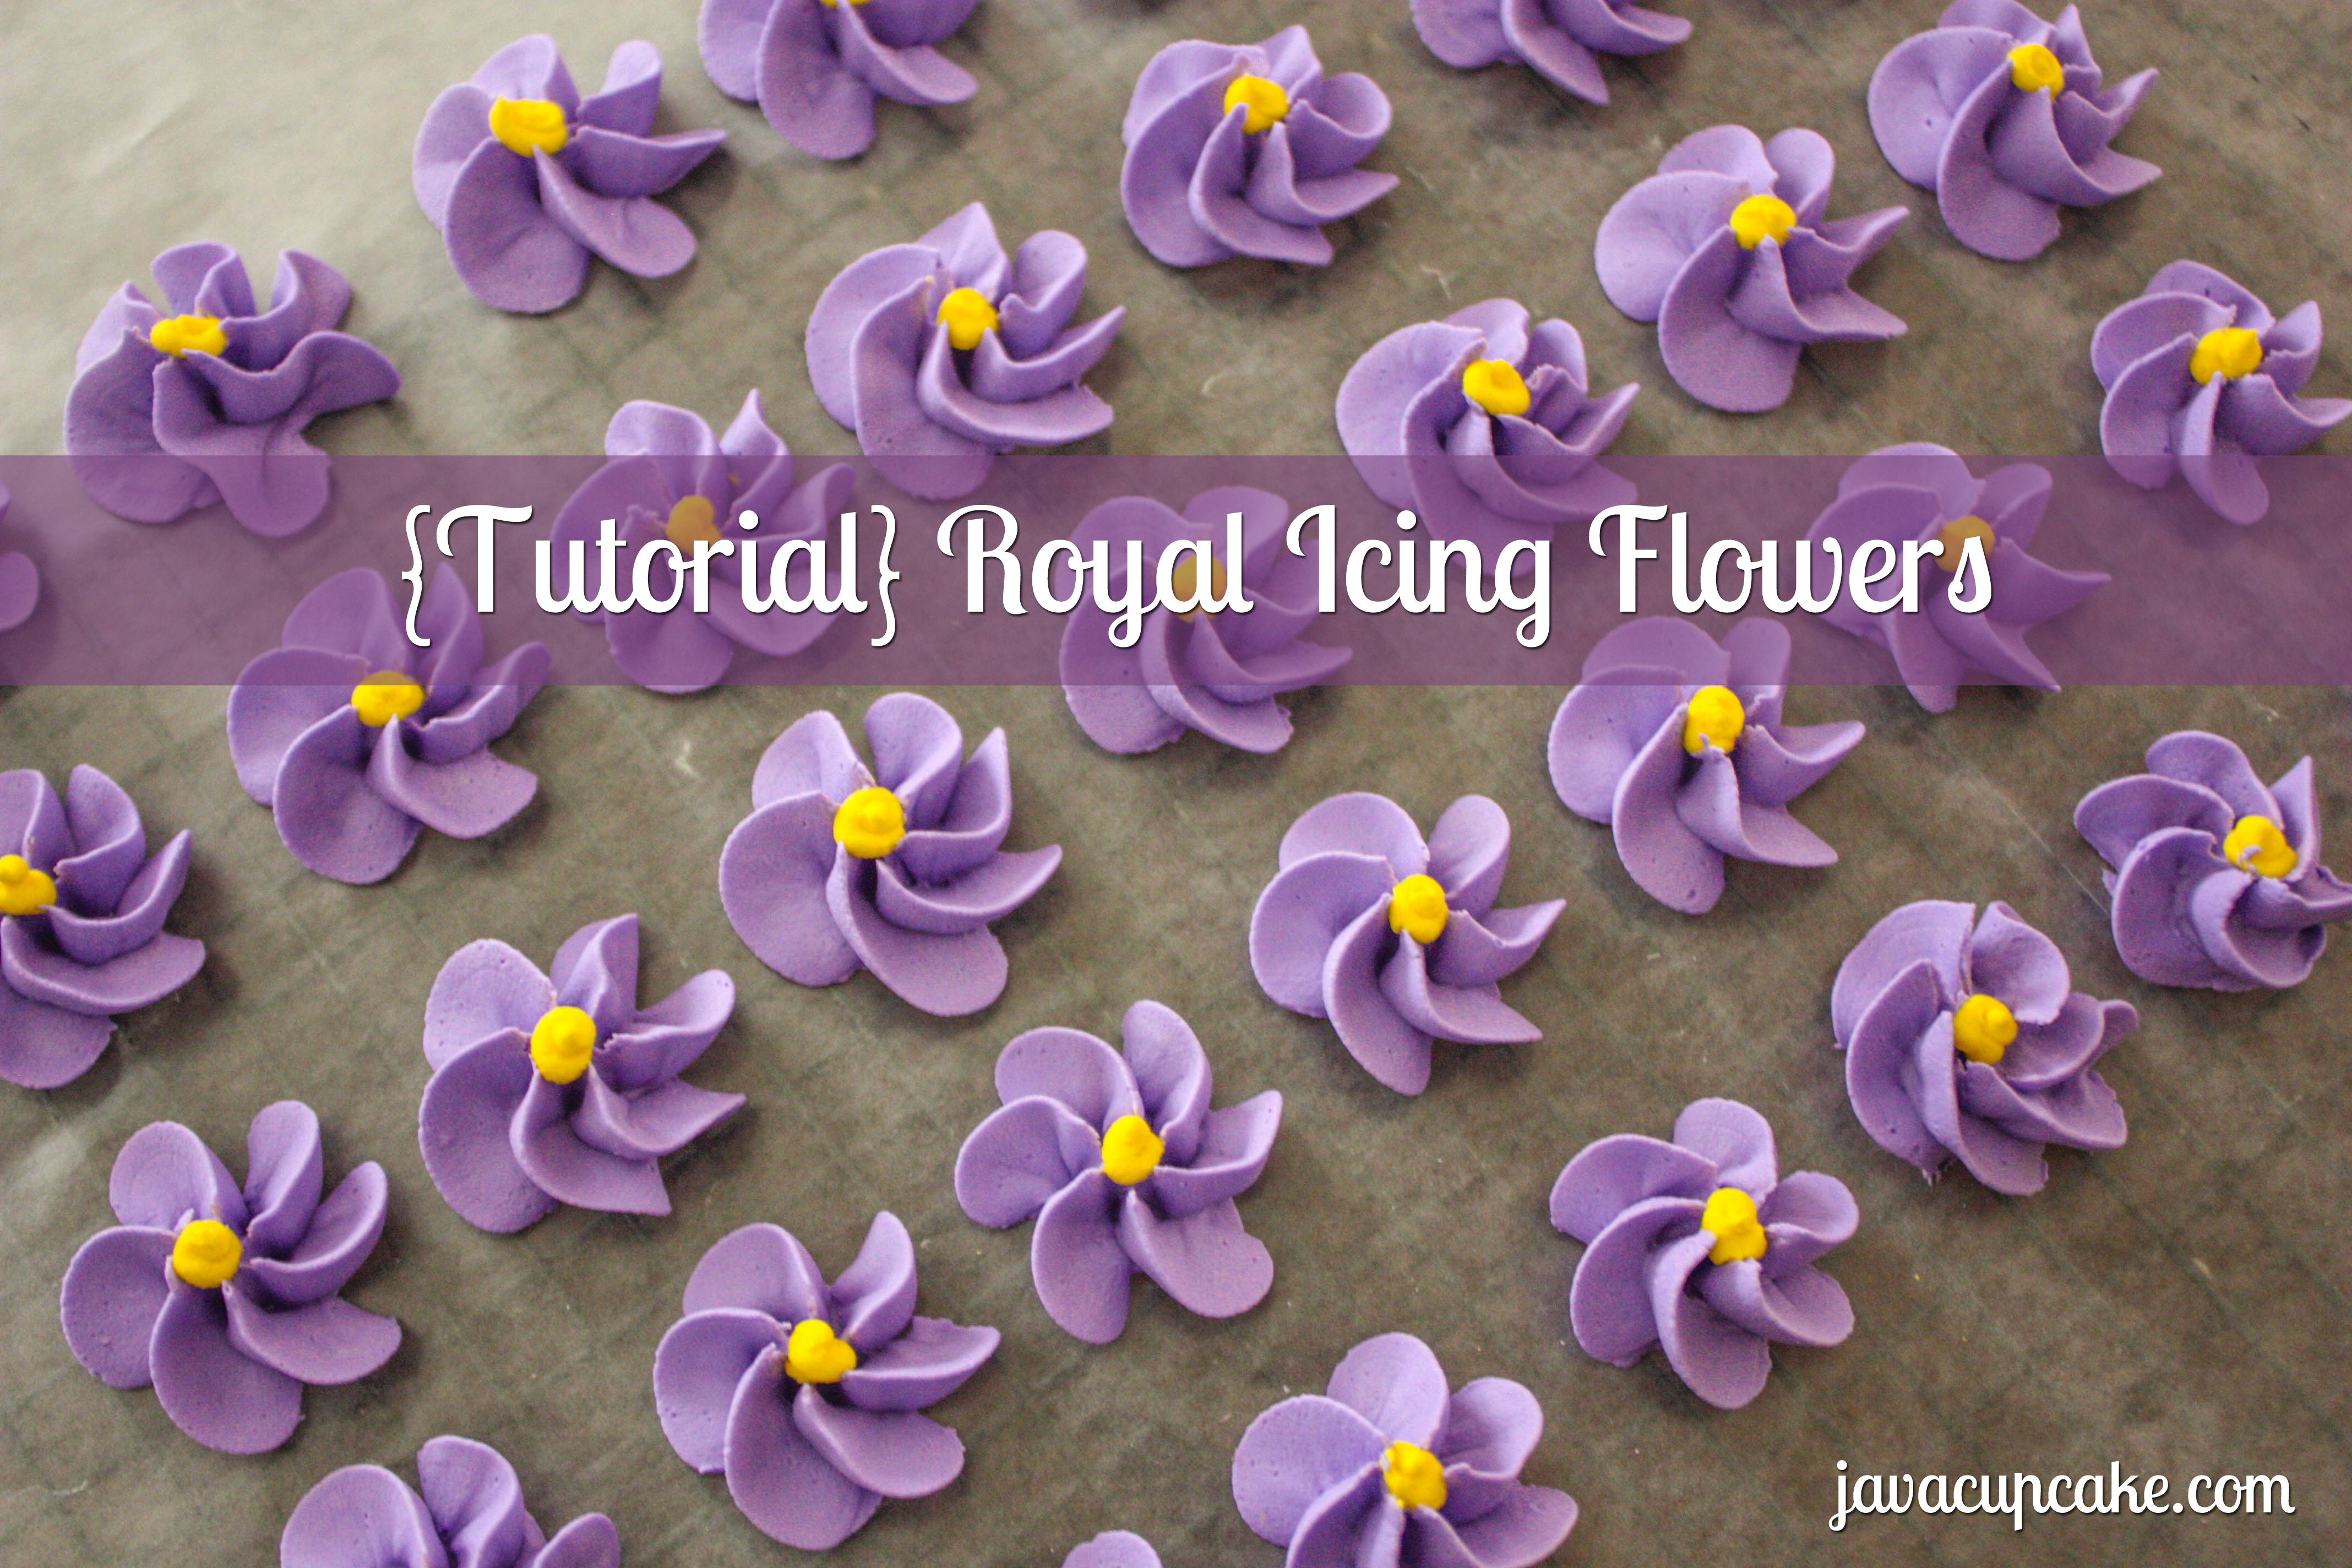 Royal Icing Flowers Recipe With Images Royal Icing Flowers